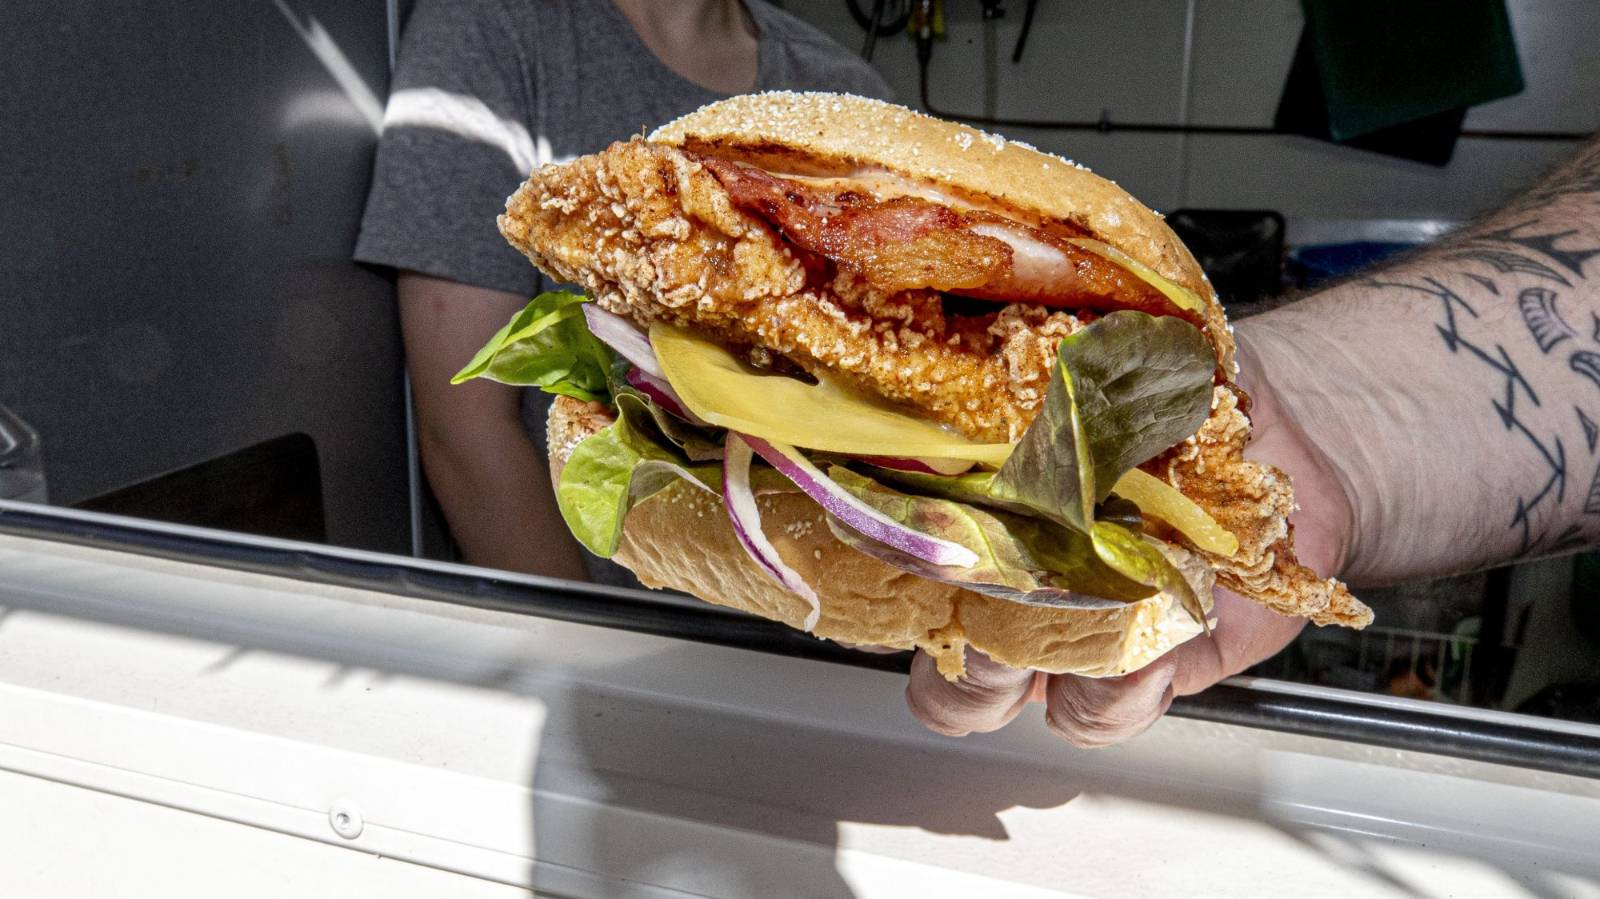 New Zealand's post-lockdown burger boom